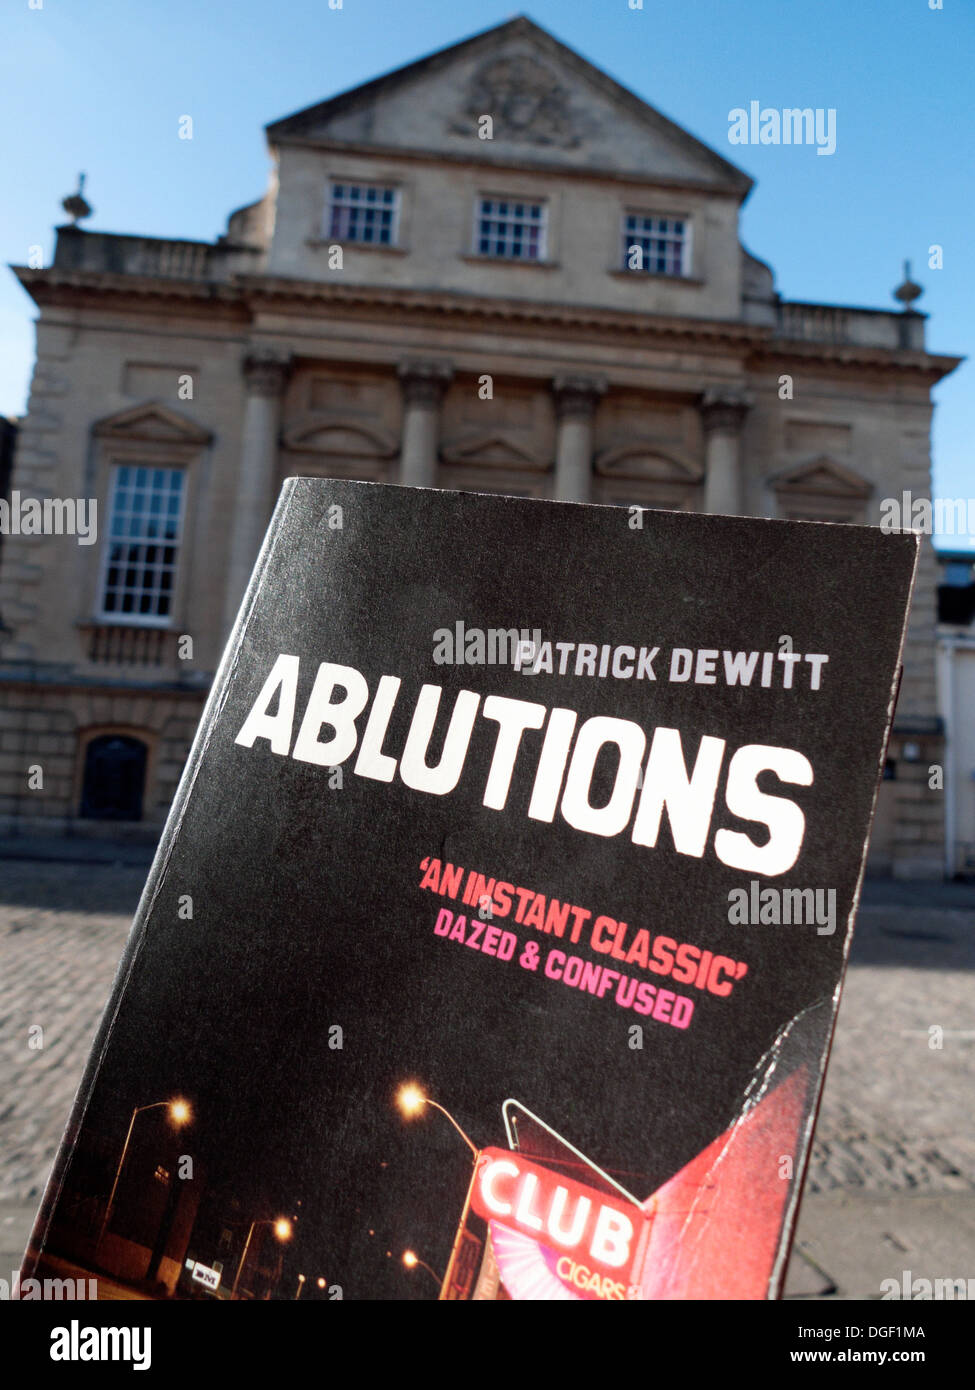 Patrick deWitt's book 'Ablutions'  production by Fellswoop Theatre at the Bristol Old Vic Theatre Bristol UK 2013 KATHY DEWITT - Stock Image